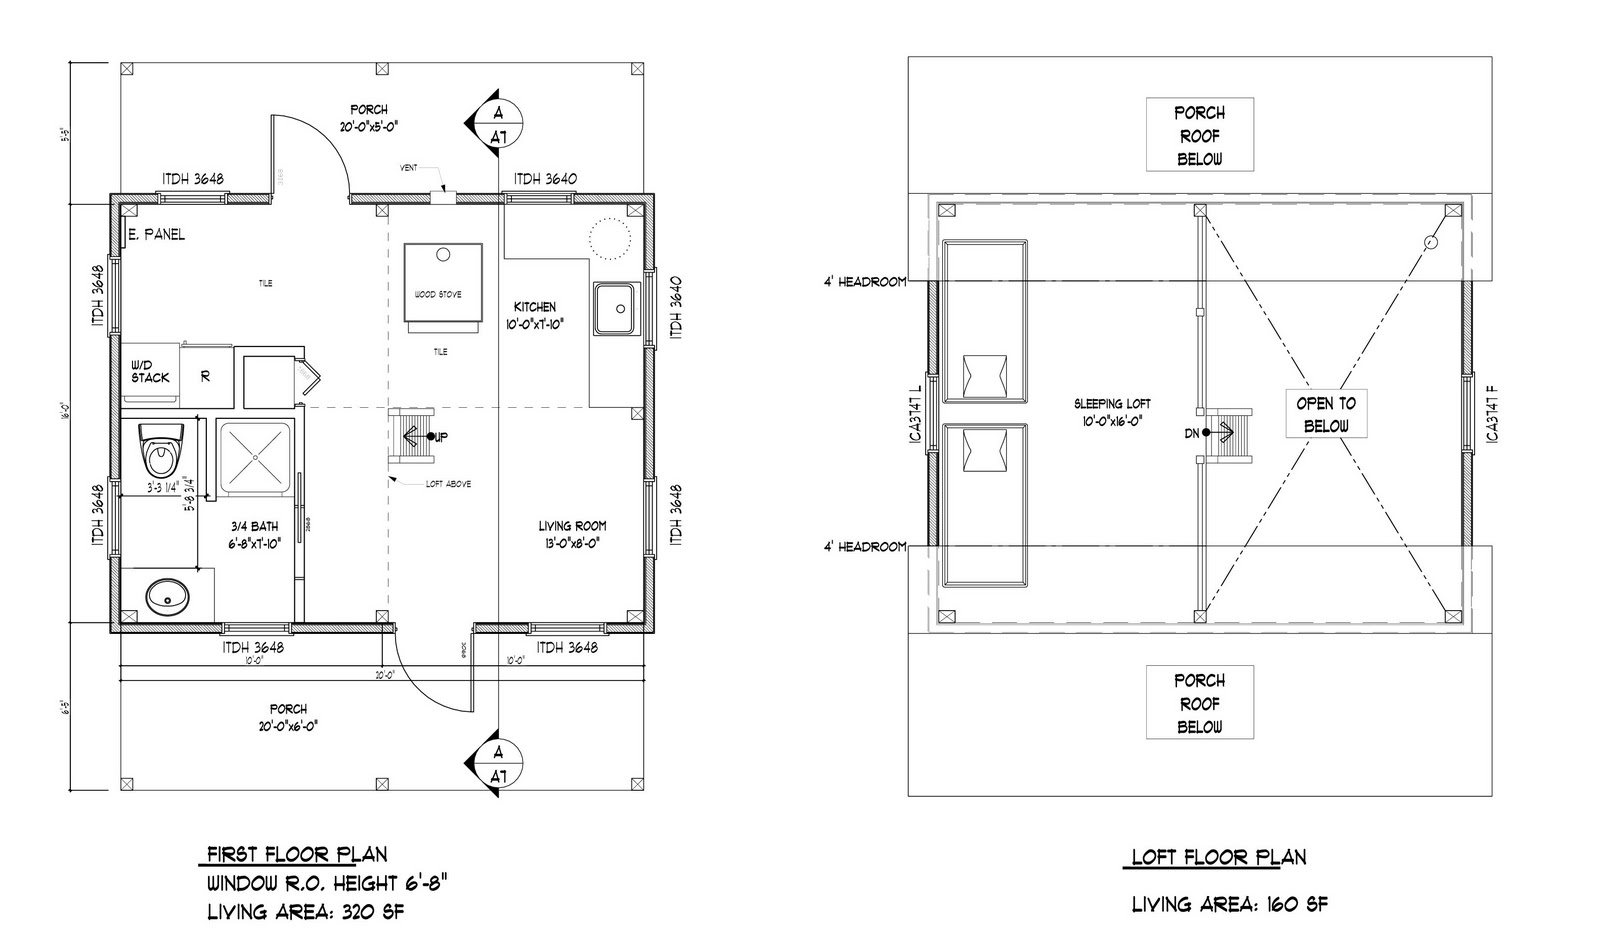 16 x 16 2 story cabin floor plans joy studio design for 20 x 20 cabin plans